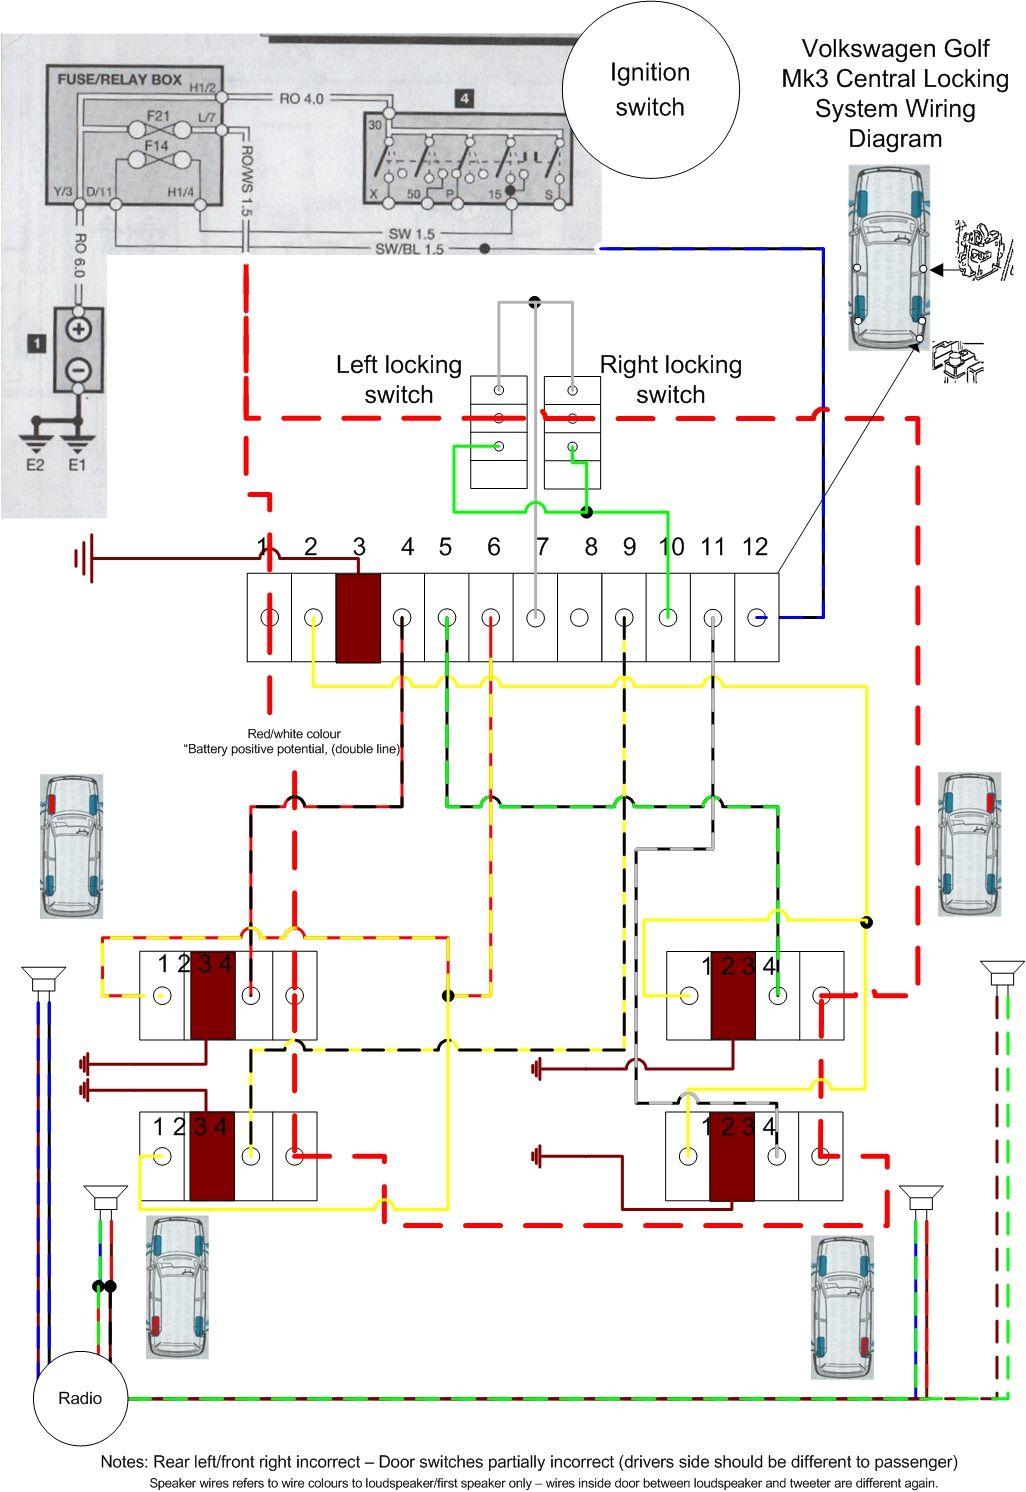 vw ignition switch wiring diagram another wiring diagramvw ignition switch wiring diagram accessory for bikes vw [ 1026 x 1492 Pixel ]